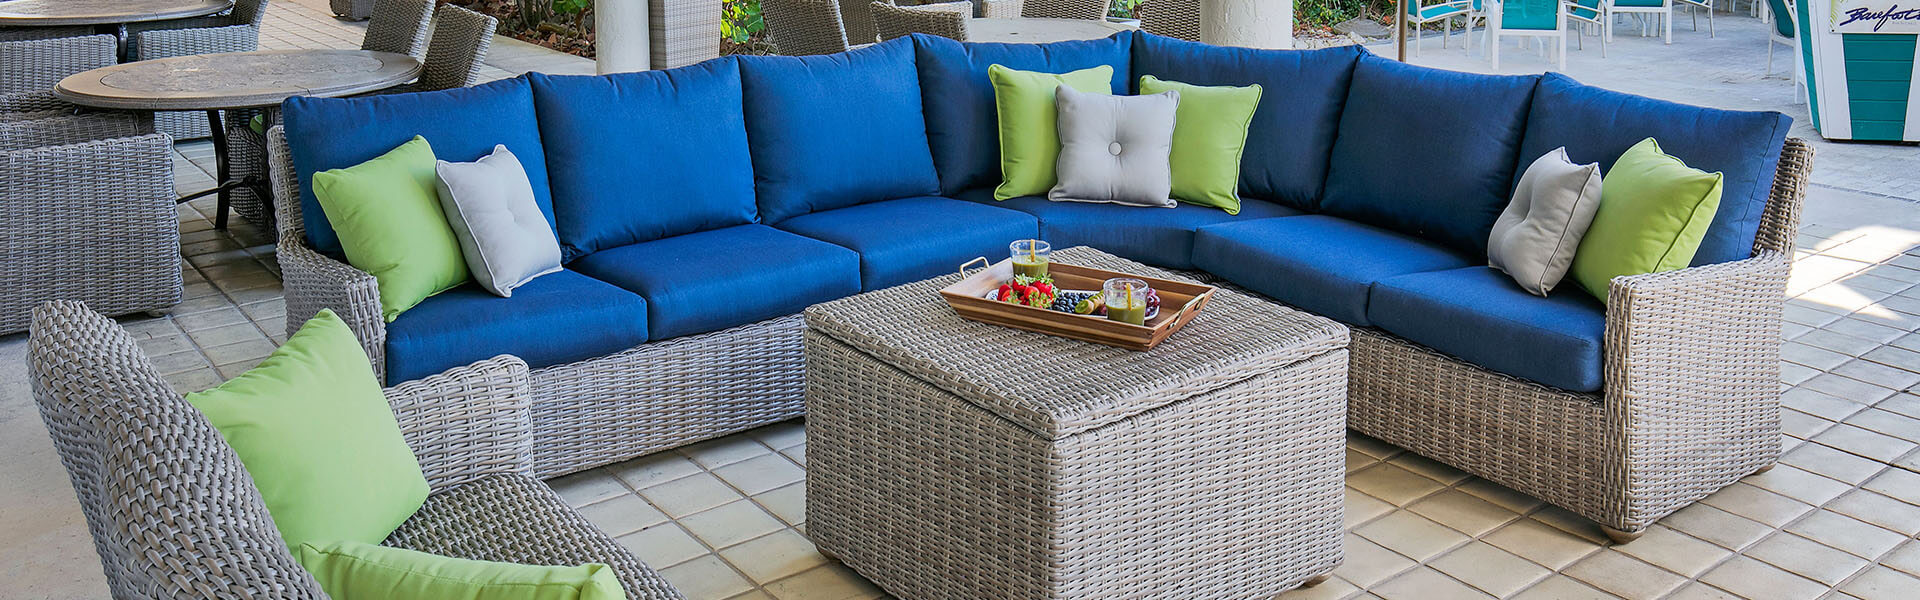 Pillows Amp Cushions Casual Living Patio Amp Poolside